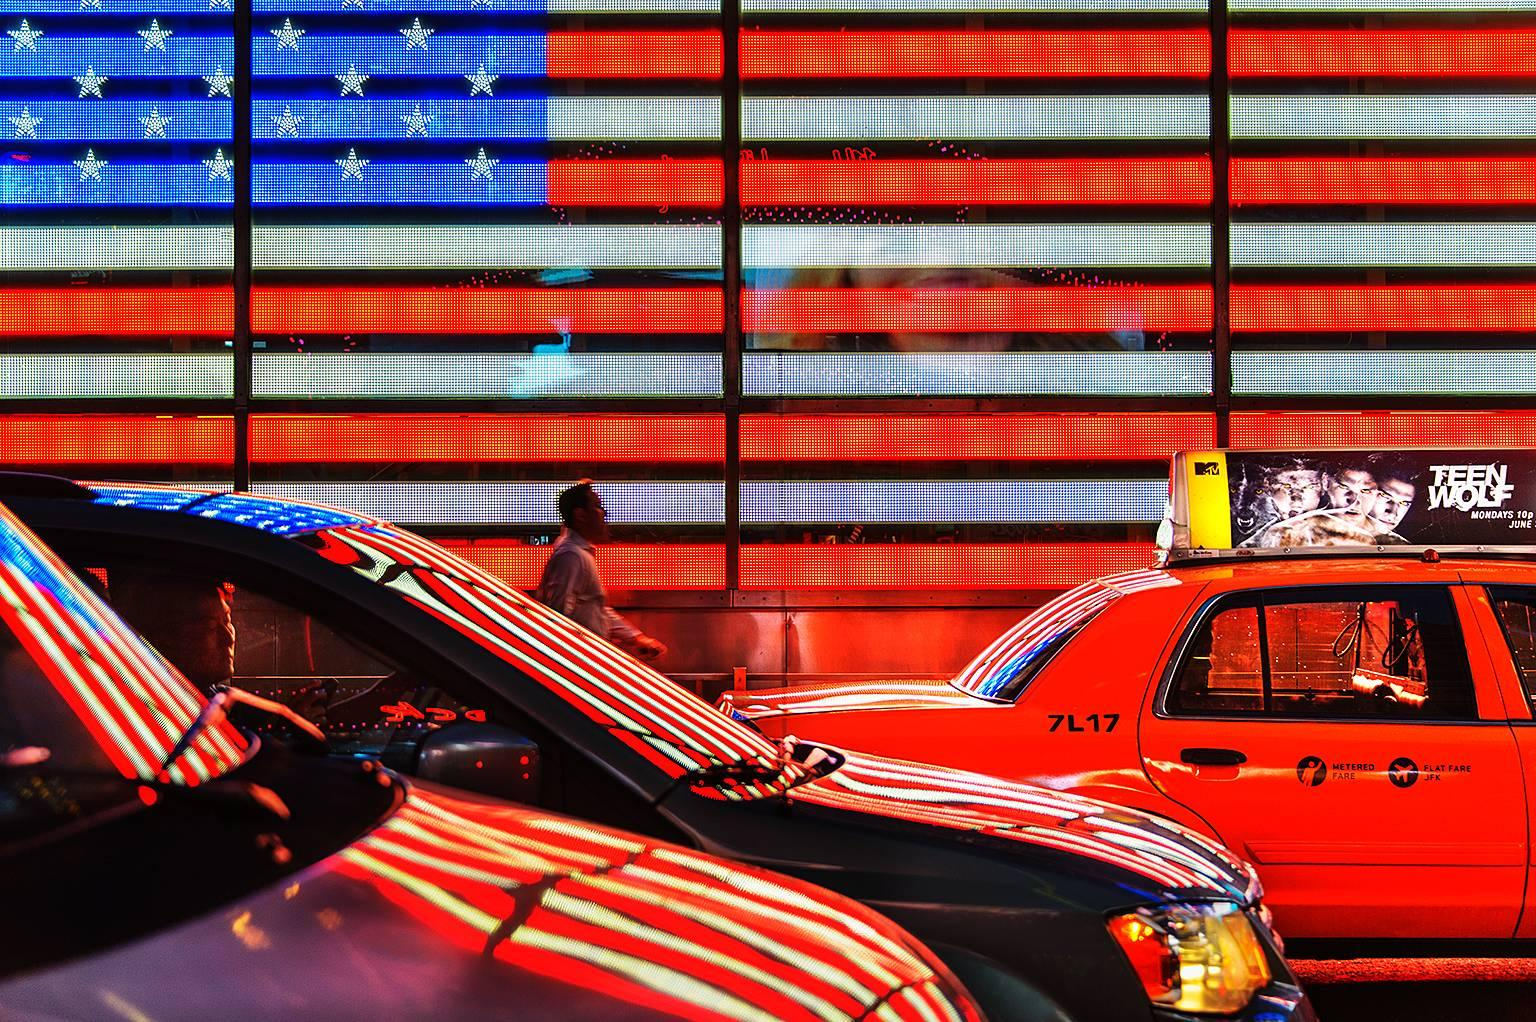 American Flag in Neon Reflections of Red White and Blue